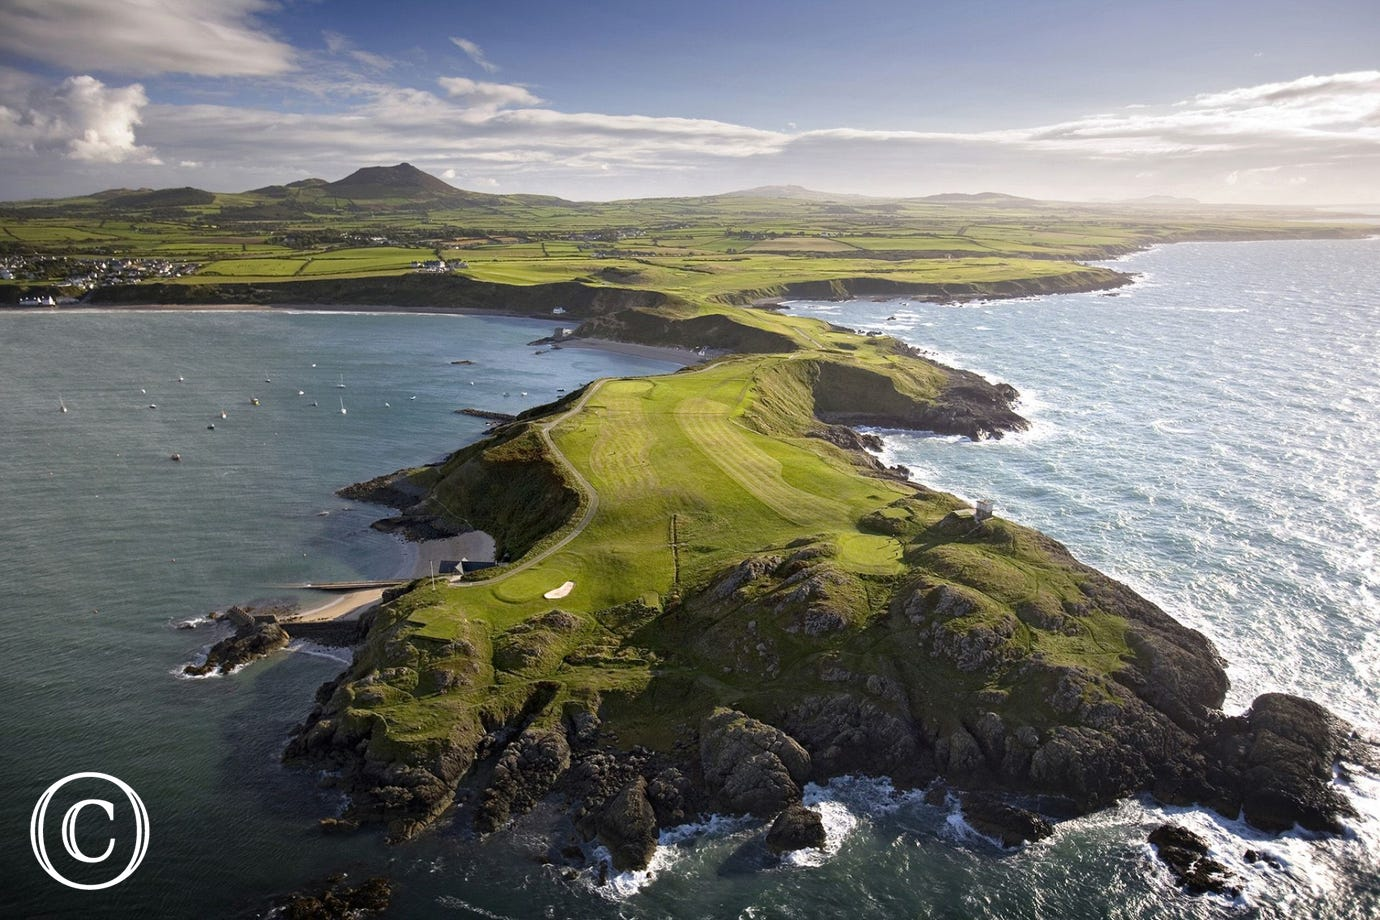 One of the most spectacular golf courses in the world at Morfa Nefyn